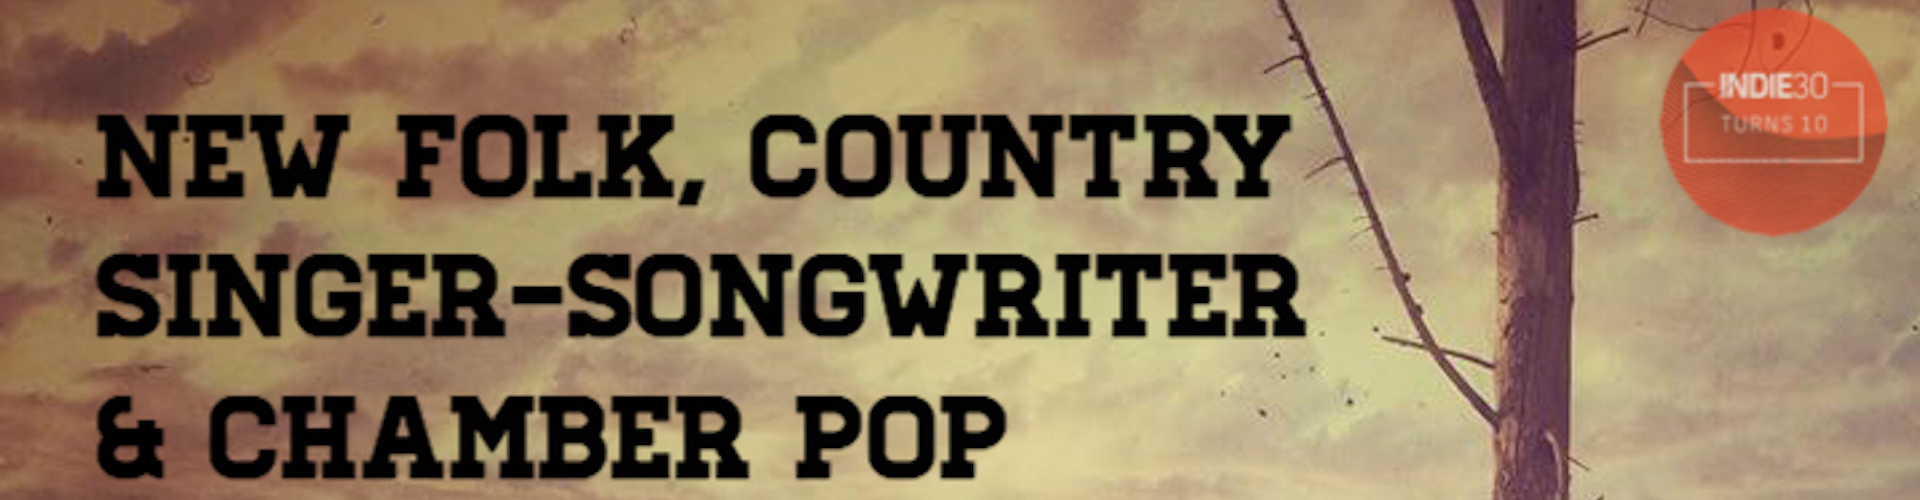 Folk-Country-Playlist-Folk-Aug-Banner